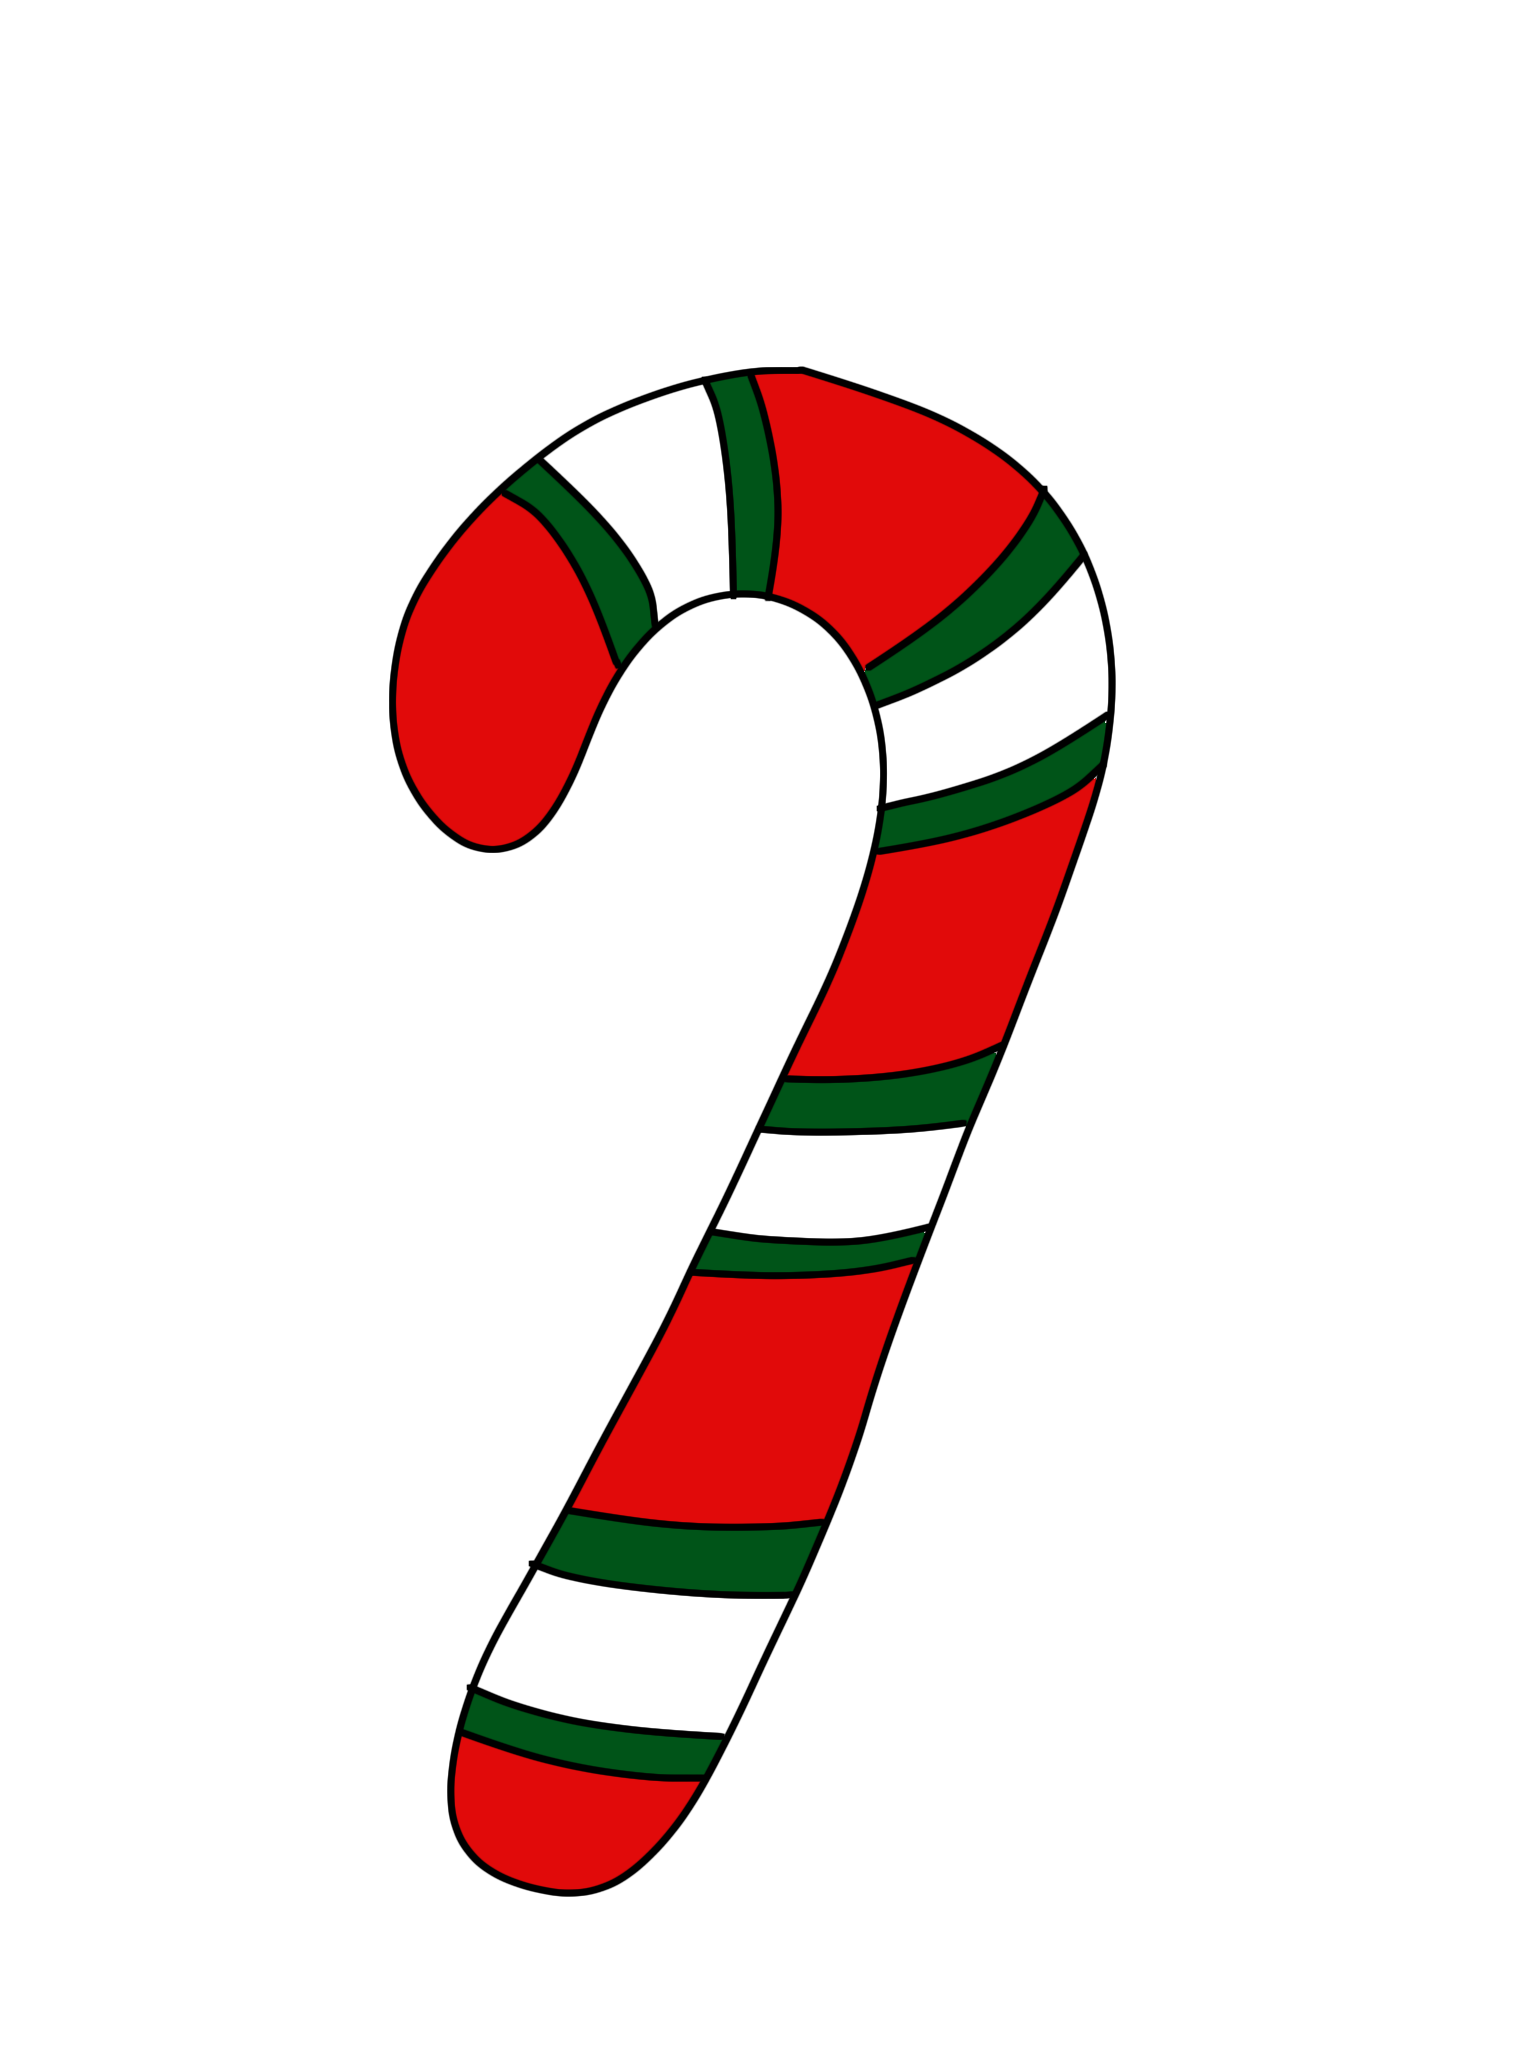 Skeleton hand holding candy cane clipart graphic stock Free Pictures Of Candy Canes, Download Free Clip Art, Free ... graphic stock